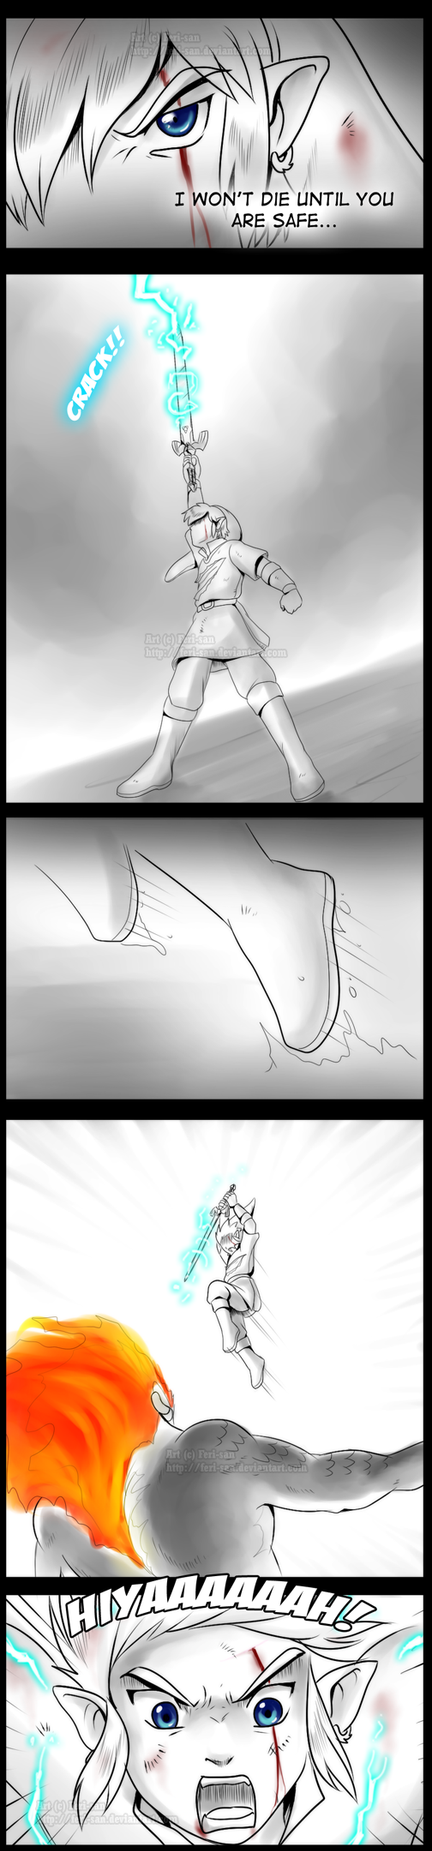 Finally Over P.4 by Ferisae